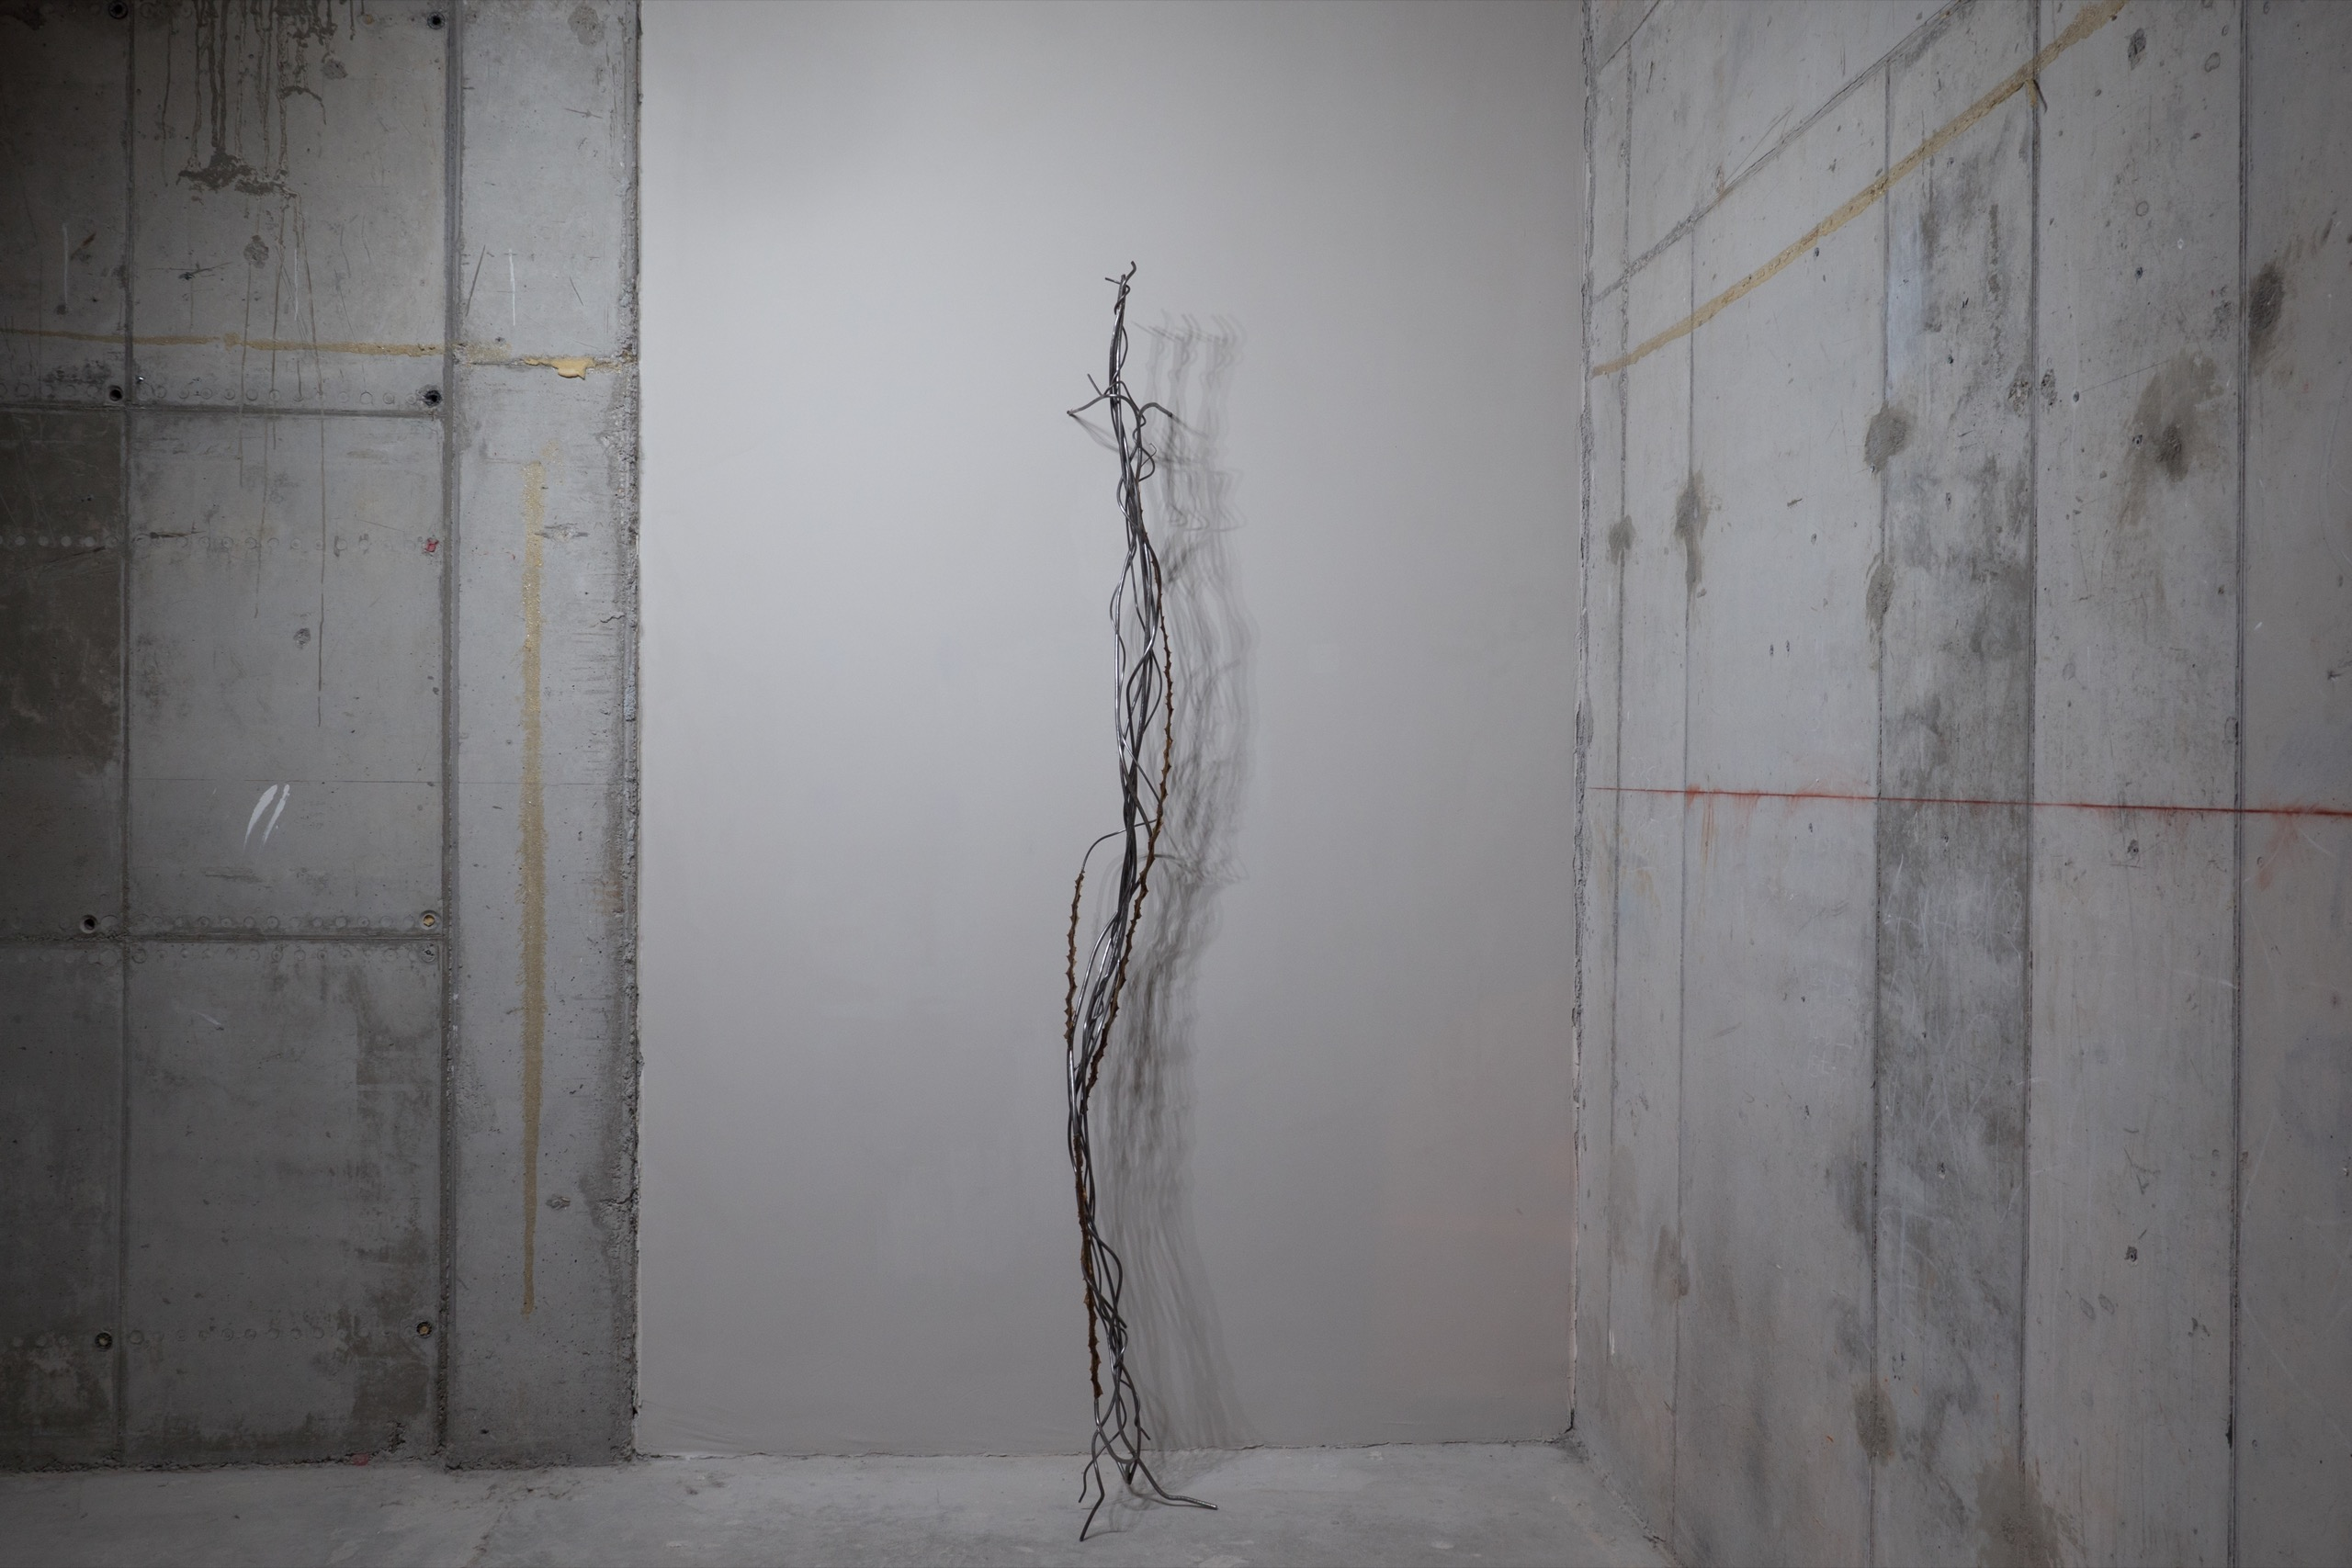 Nona Inescu, 'Intertangle I', 2021, steel, various vegetal insertions, dimensions variable